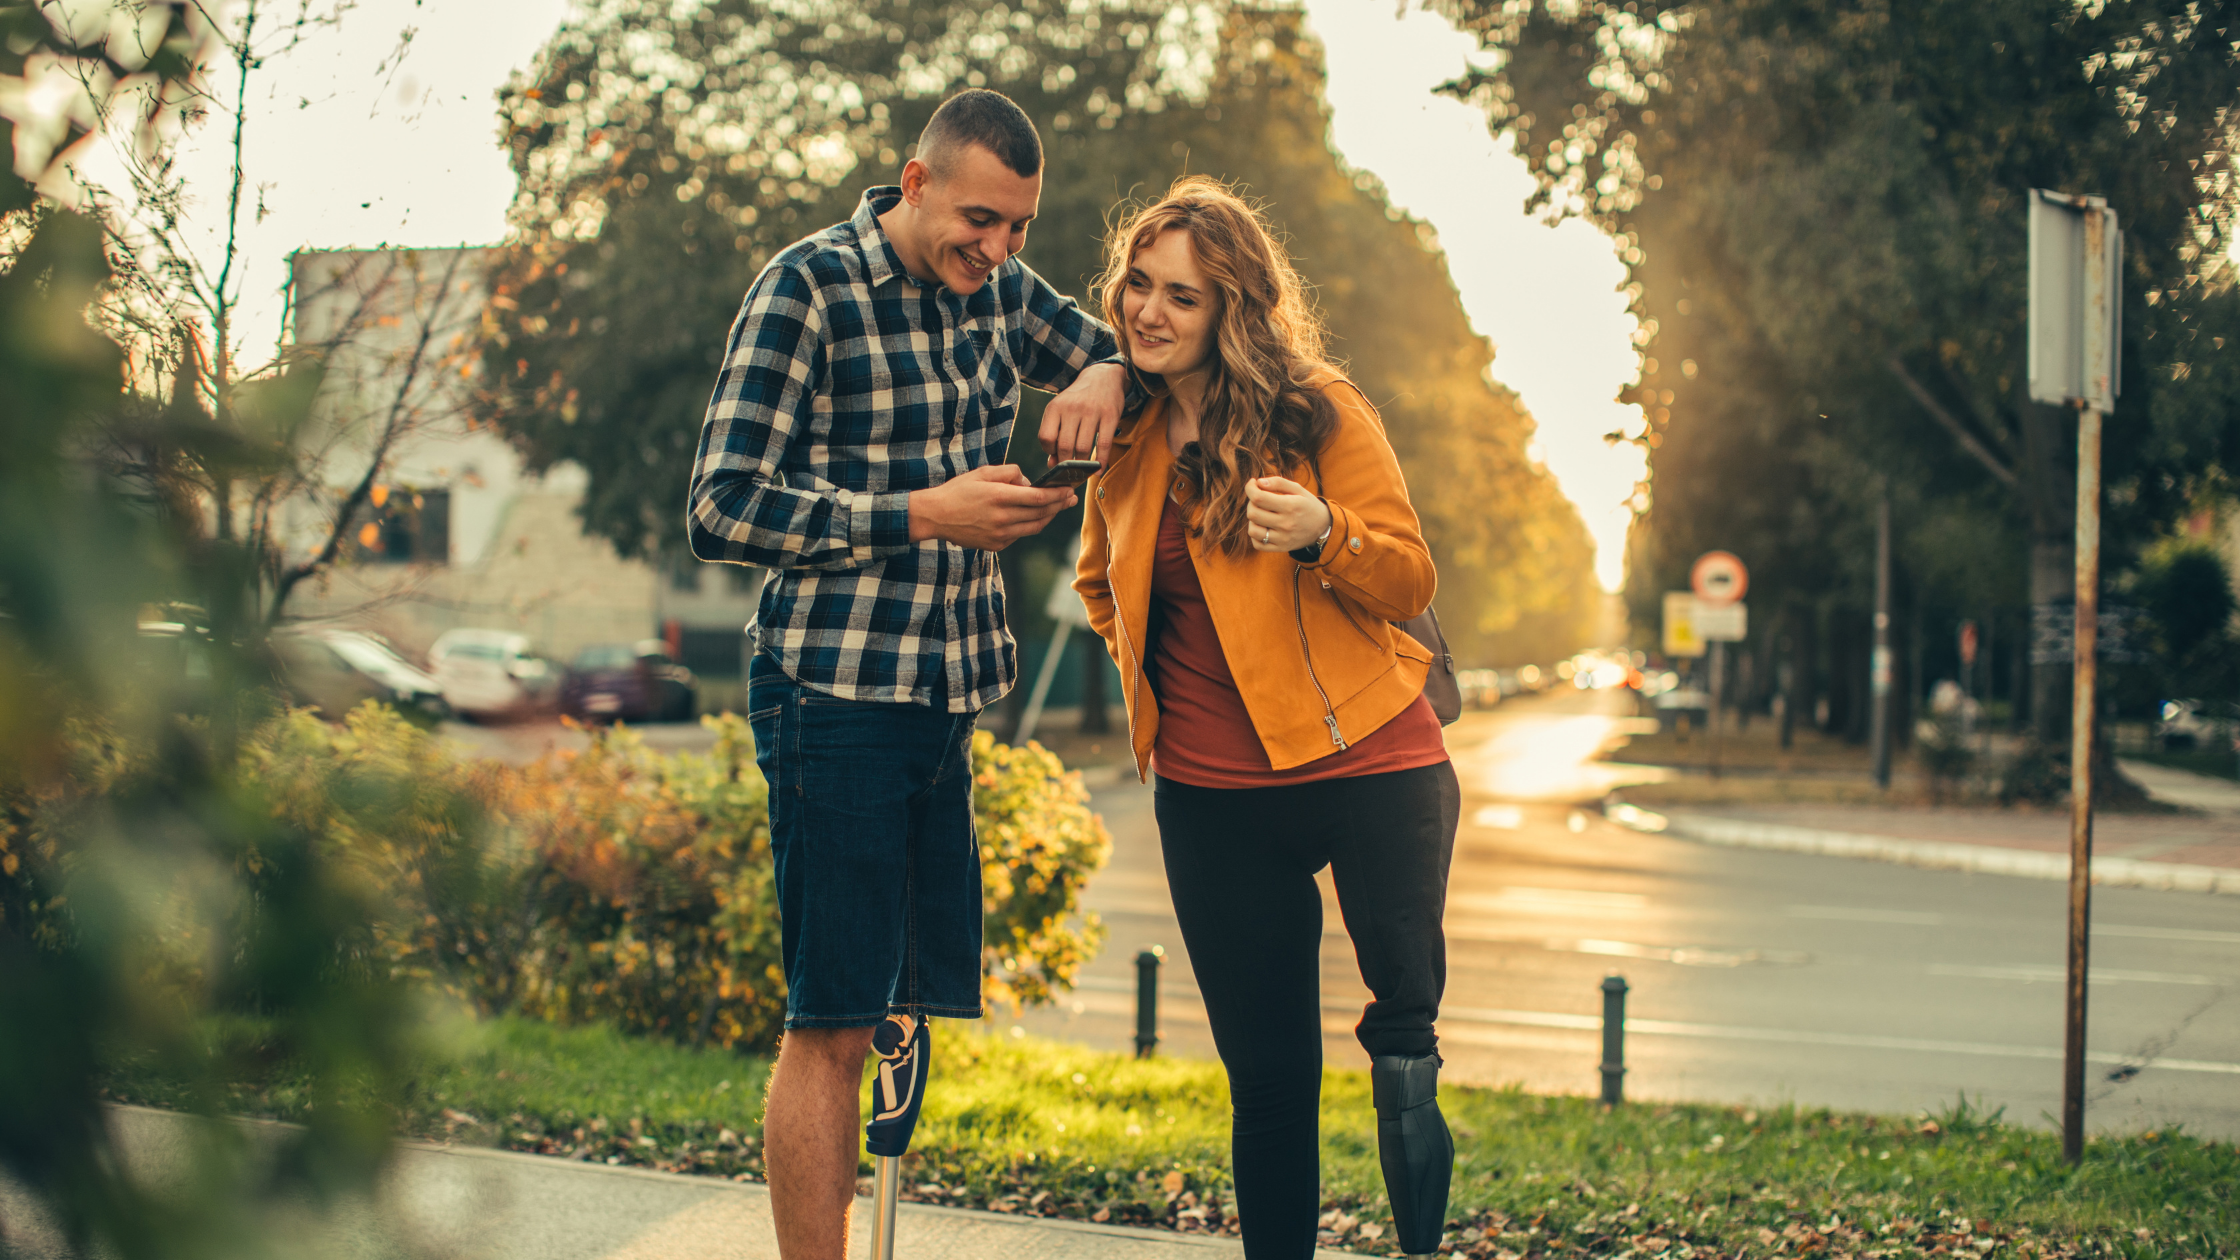 A man and woman standing on a sidewalk. Each has a prosthetic left leg. The man is resting his elbow on the woman's shoulder, looking at his phone. Both are smiling.